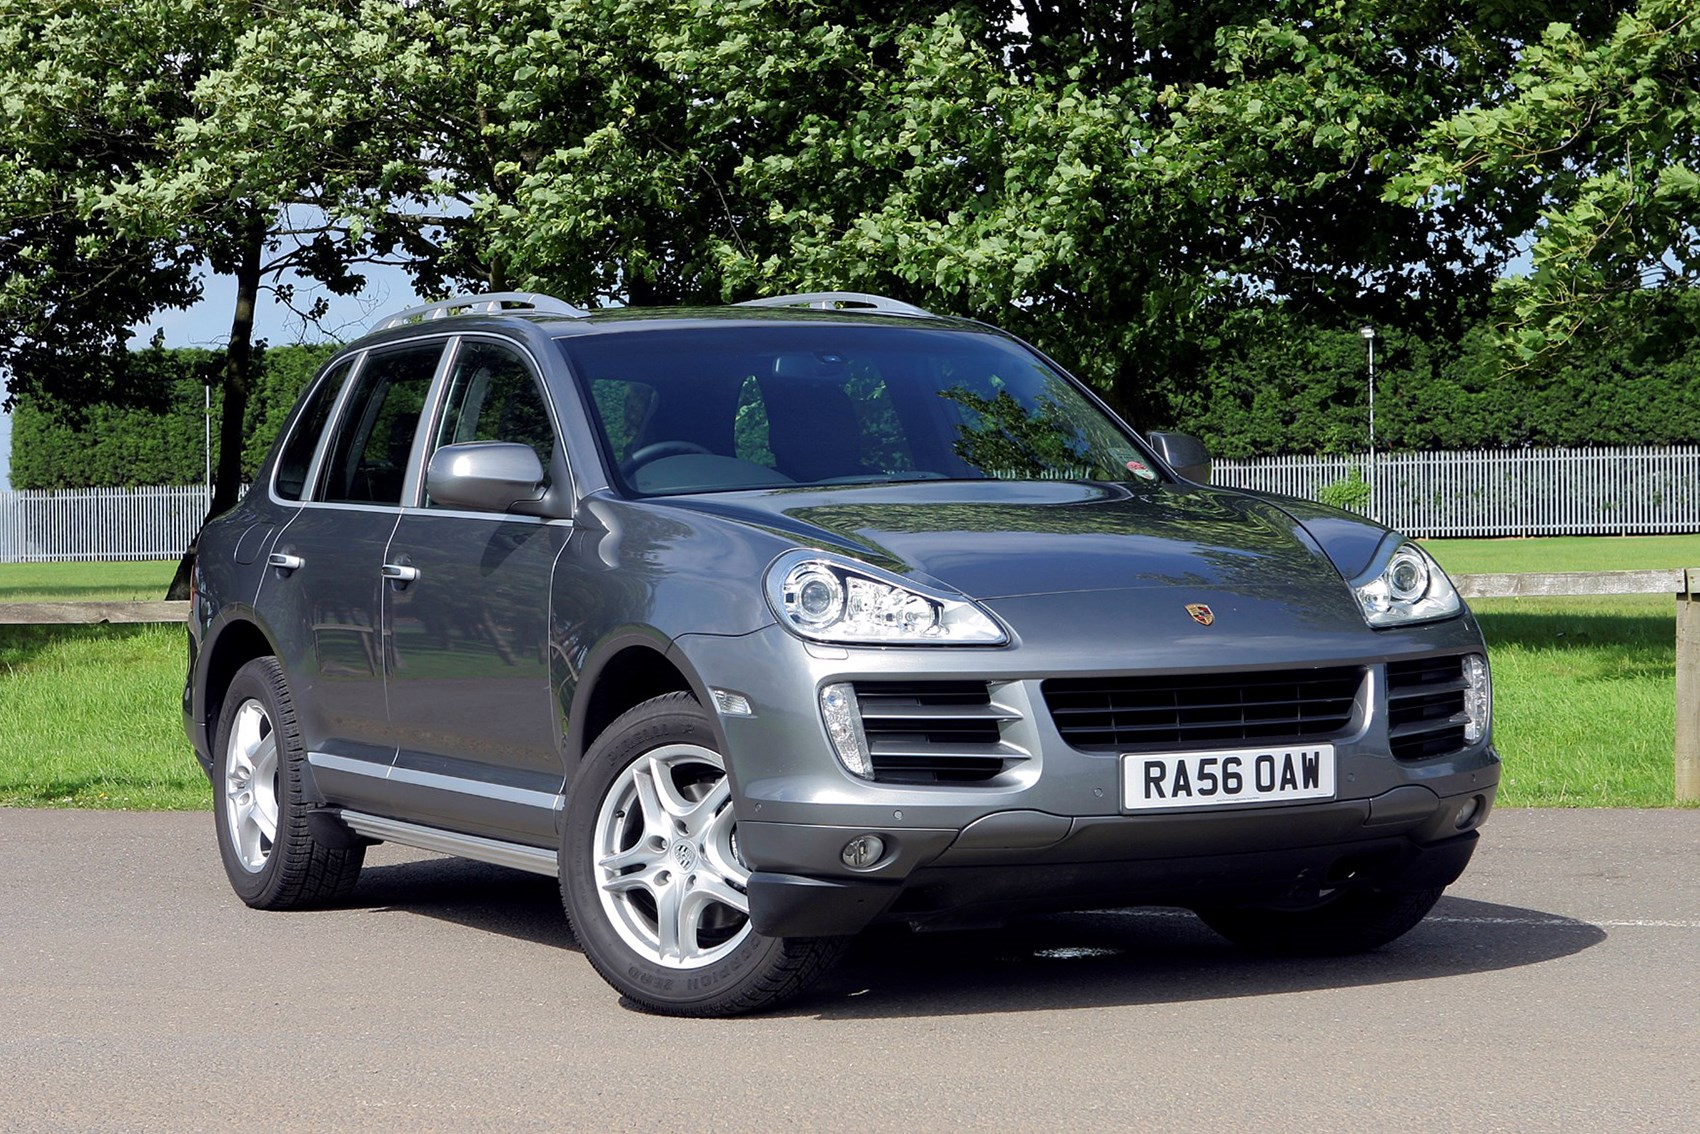 Porsche cayenne luxury cars for less than 10k